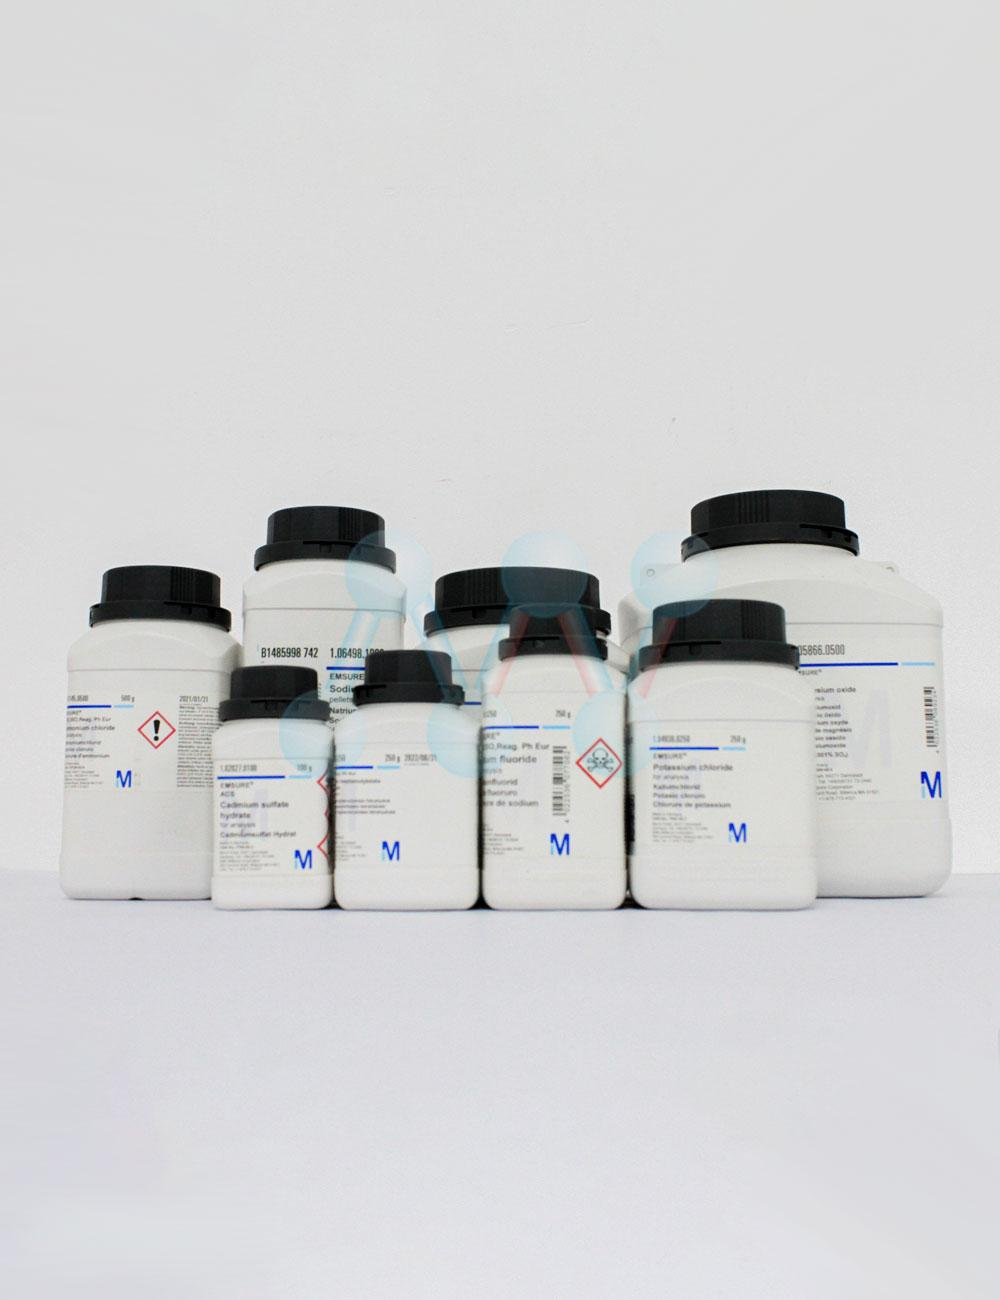 Calcium chloride dihydrate CaCl2.2H2O